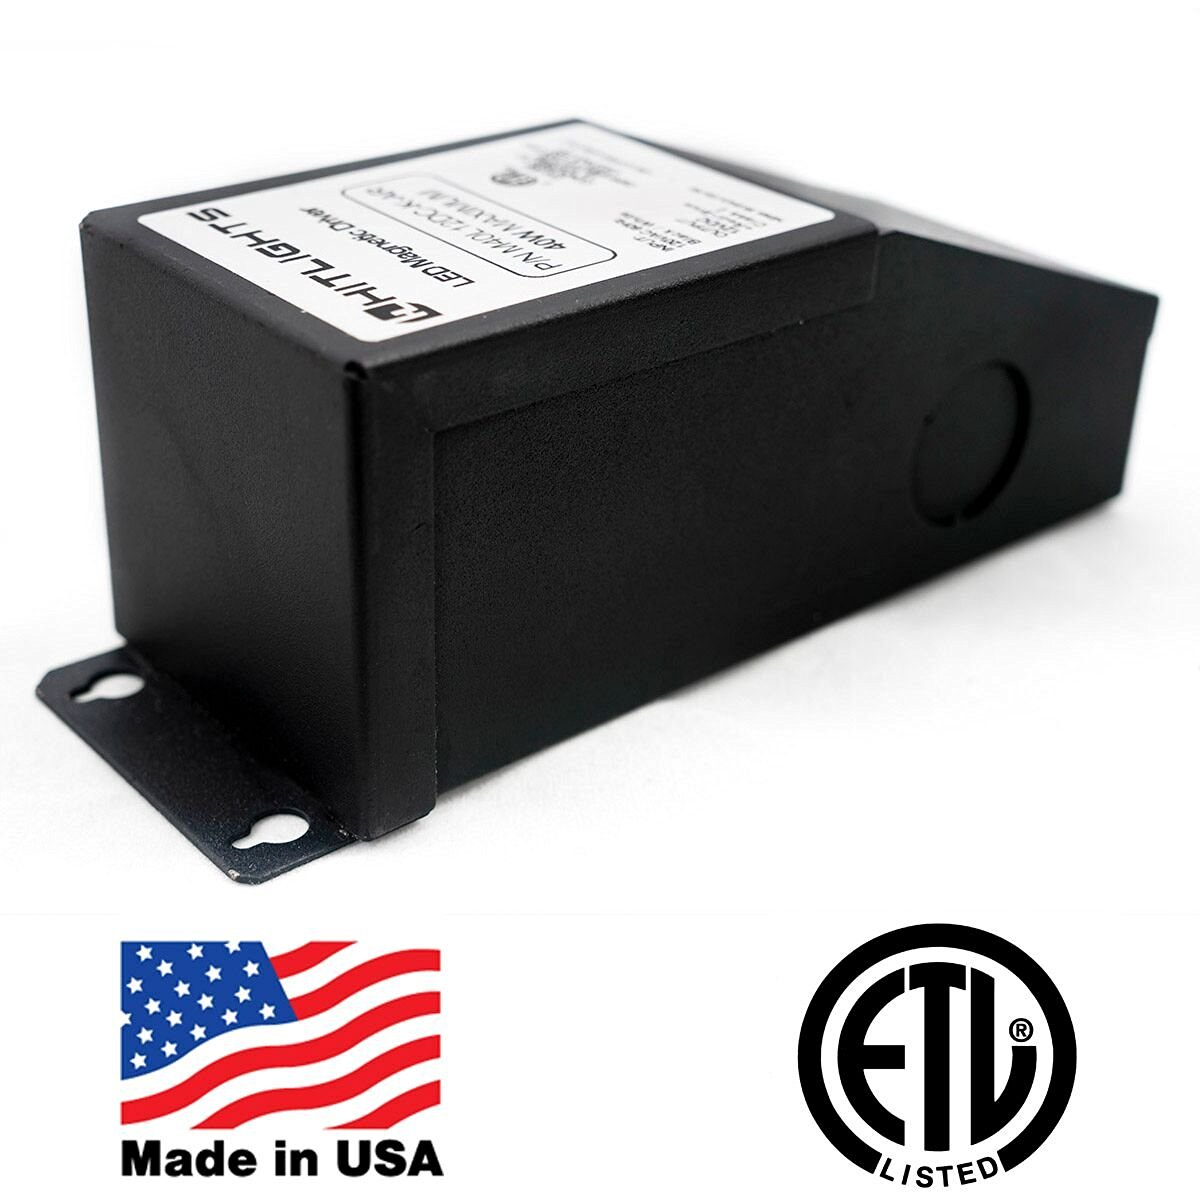 HitLights 40 Watt Dimmable LED Driver, 12V Magnetic LED Driver Transformer – 110V AC – 12V DC LED Transformer. Compatible with Lutron and Leviton for LED Strip Lights, Constant Voltage LED Products